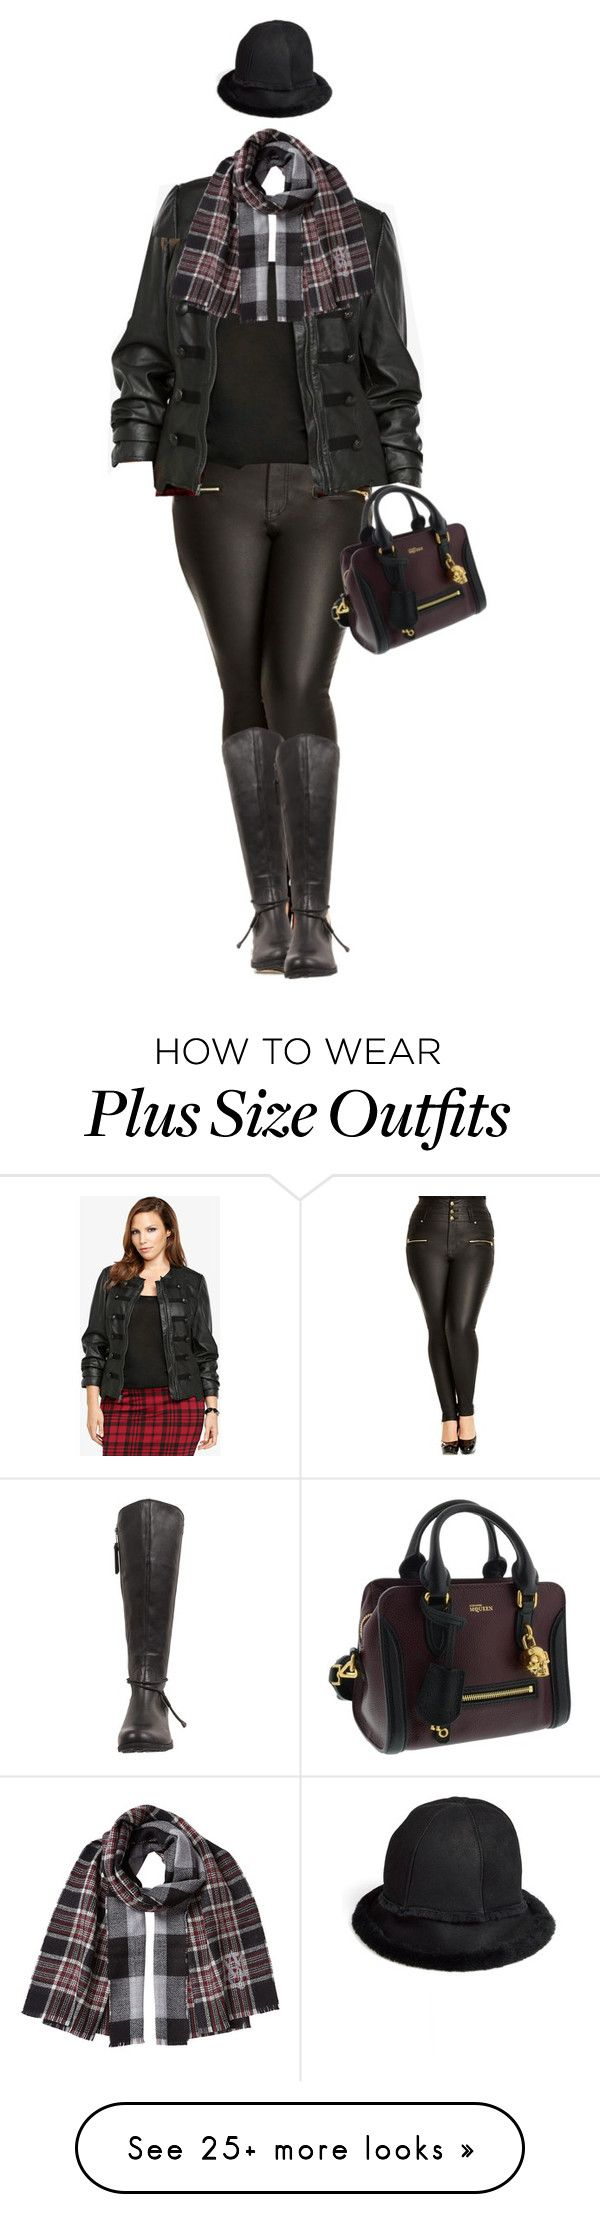 """Pam Plus Size Fashion"" by dkelley-0711 on Polyvore featuring City Chic, Torrid, UGG Australia, Alexander McQueen, AlexanderMcQueen, ugg, torrid, 2015wishlist and plus size clothing"